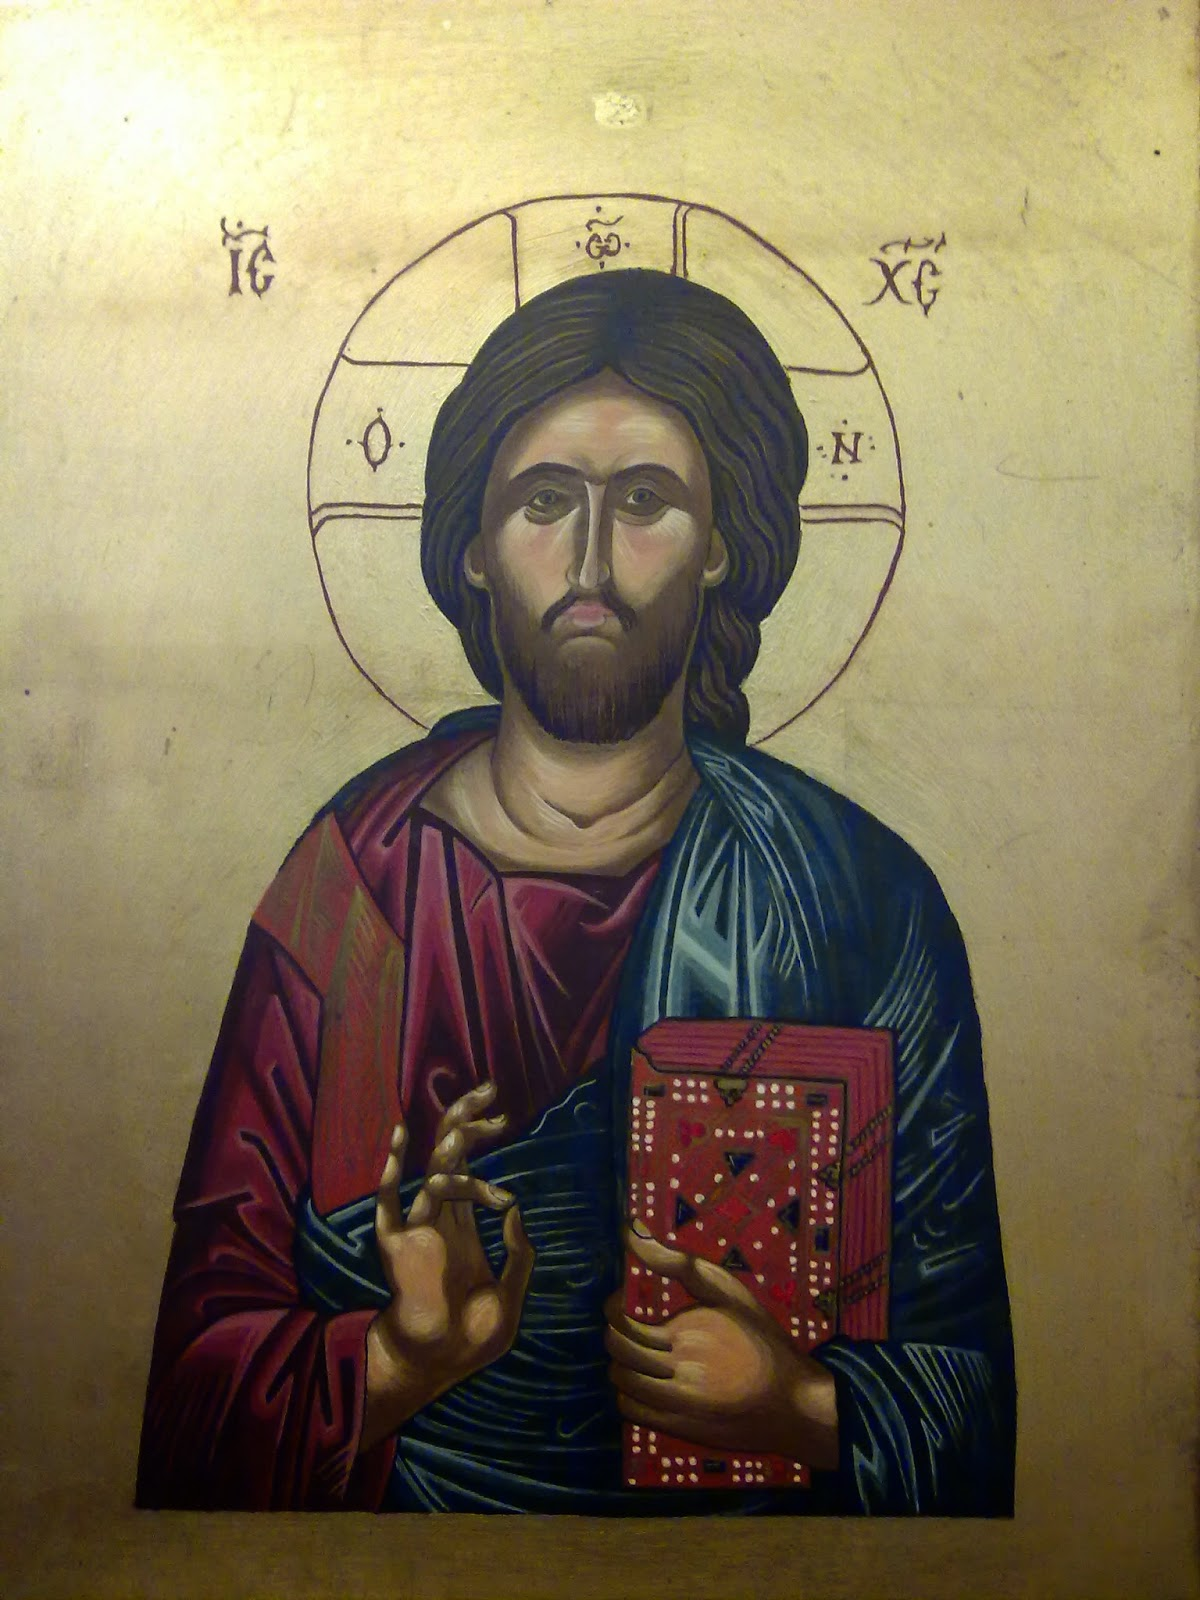 Road to rome iconography class at st clement s monastery galong nsw sept 2014 for Comfaience saint clement